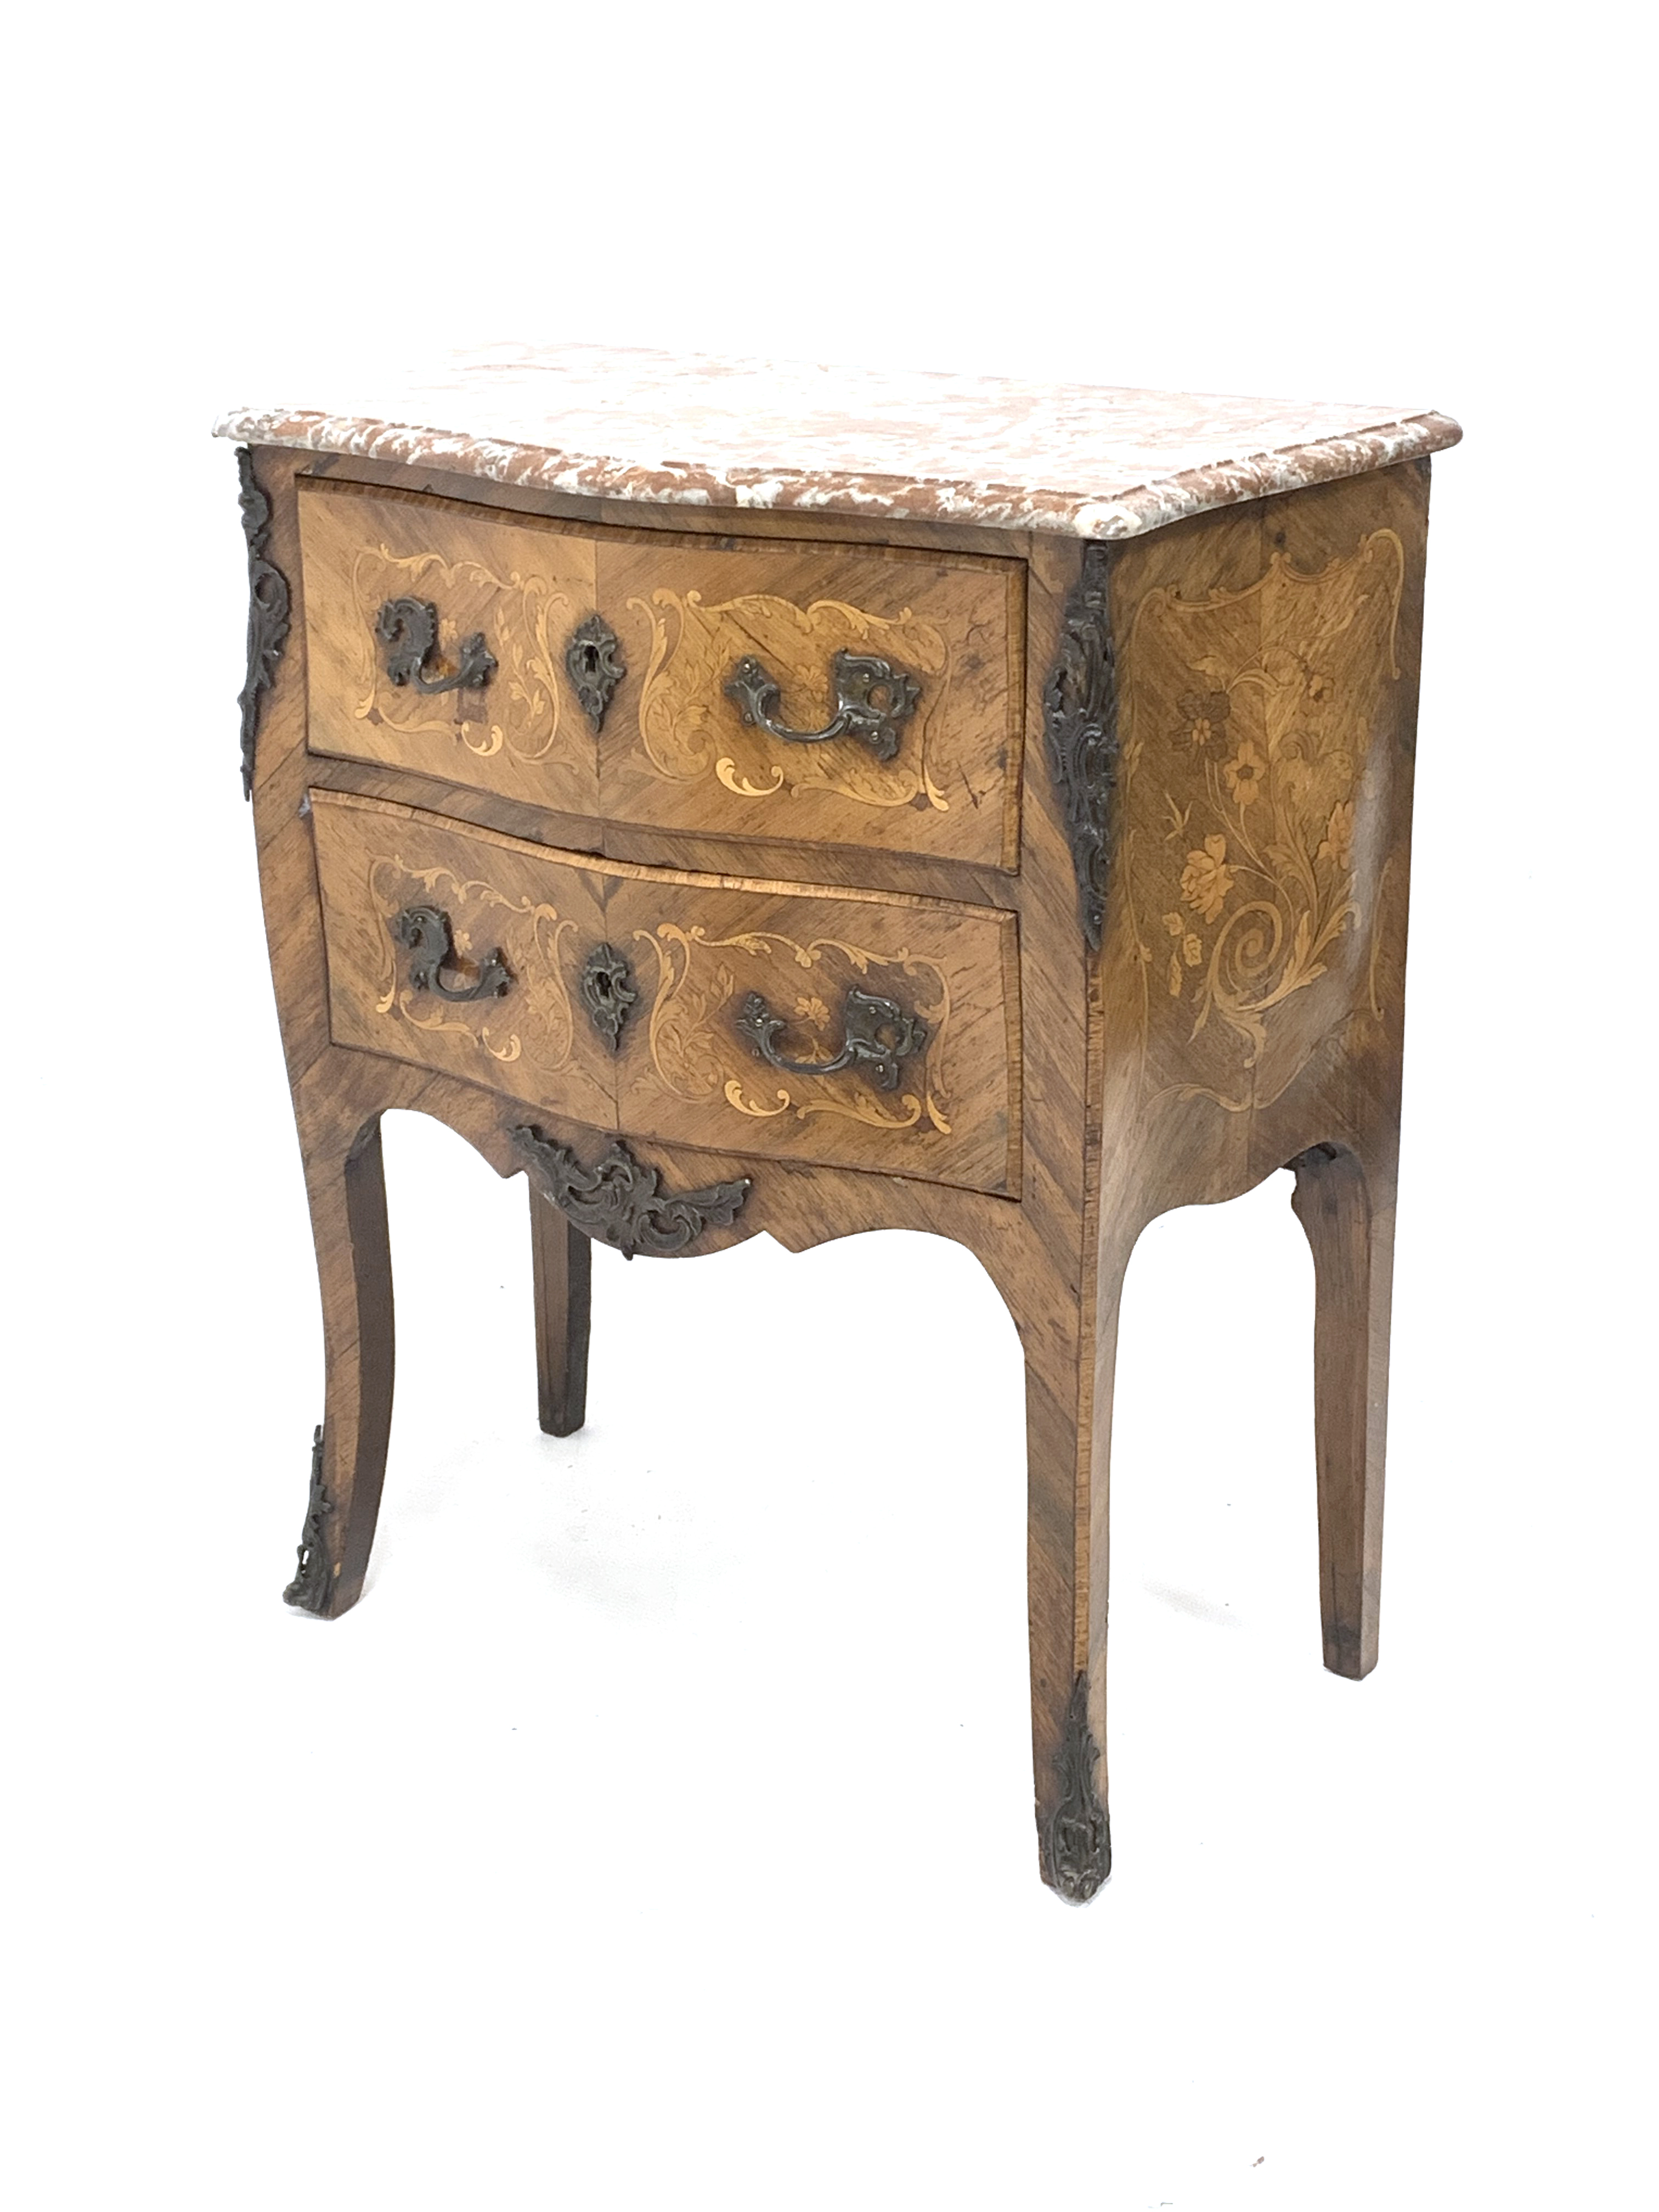 Early 20th century walnut and Kingwood bombe chest, shaped and moulded rouge marble top, two